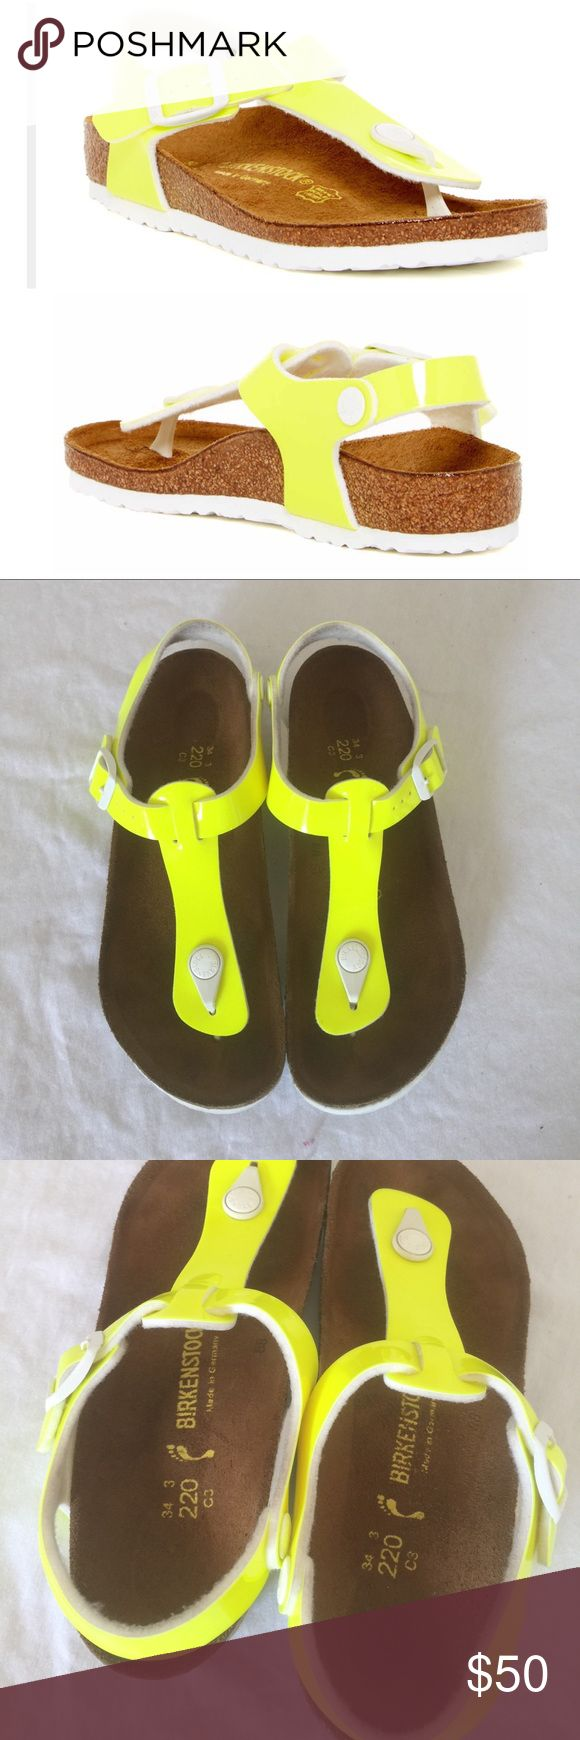 Birkenstock, kids, kairo, size 3, neon Omg, mini birkenstocks.. Introducing the Kairo, in neon, patent, yellow, size 3.no trades. Worn once, amazing preowned condition. A brand new sandal for little girls, this style is modeled after the adult version of the Kairo. It's a great alternative to the traditional flip-flop, while remaining stylish and versatile. Upper Material: Patent BirkoFlor Sole Material: Extra thin EVA  Footbed: Cork and EVA  Arch Support: Maximum Birkenstock Shoes Sandals…